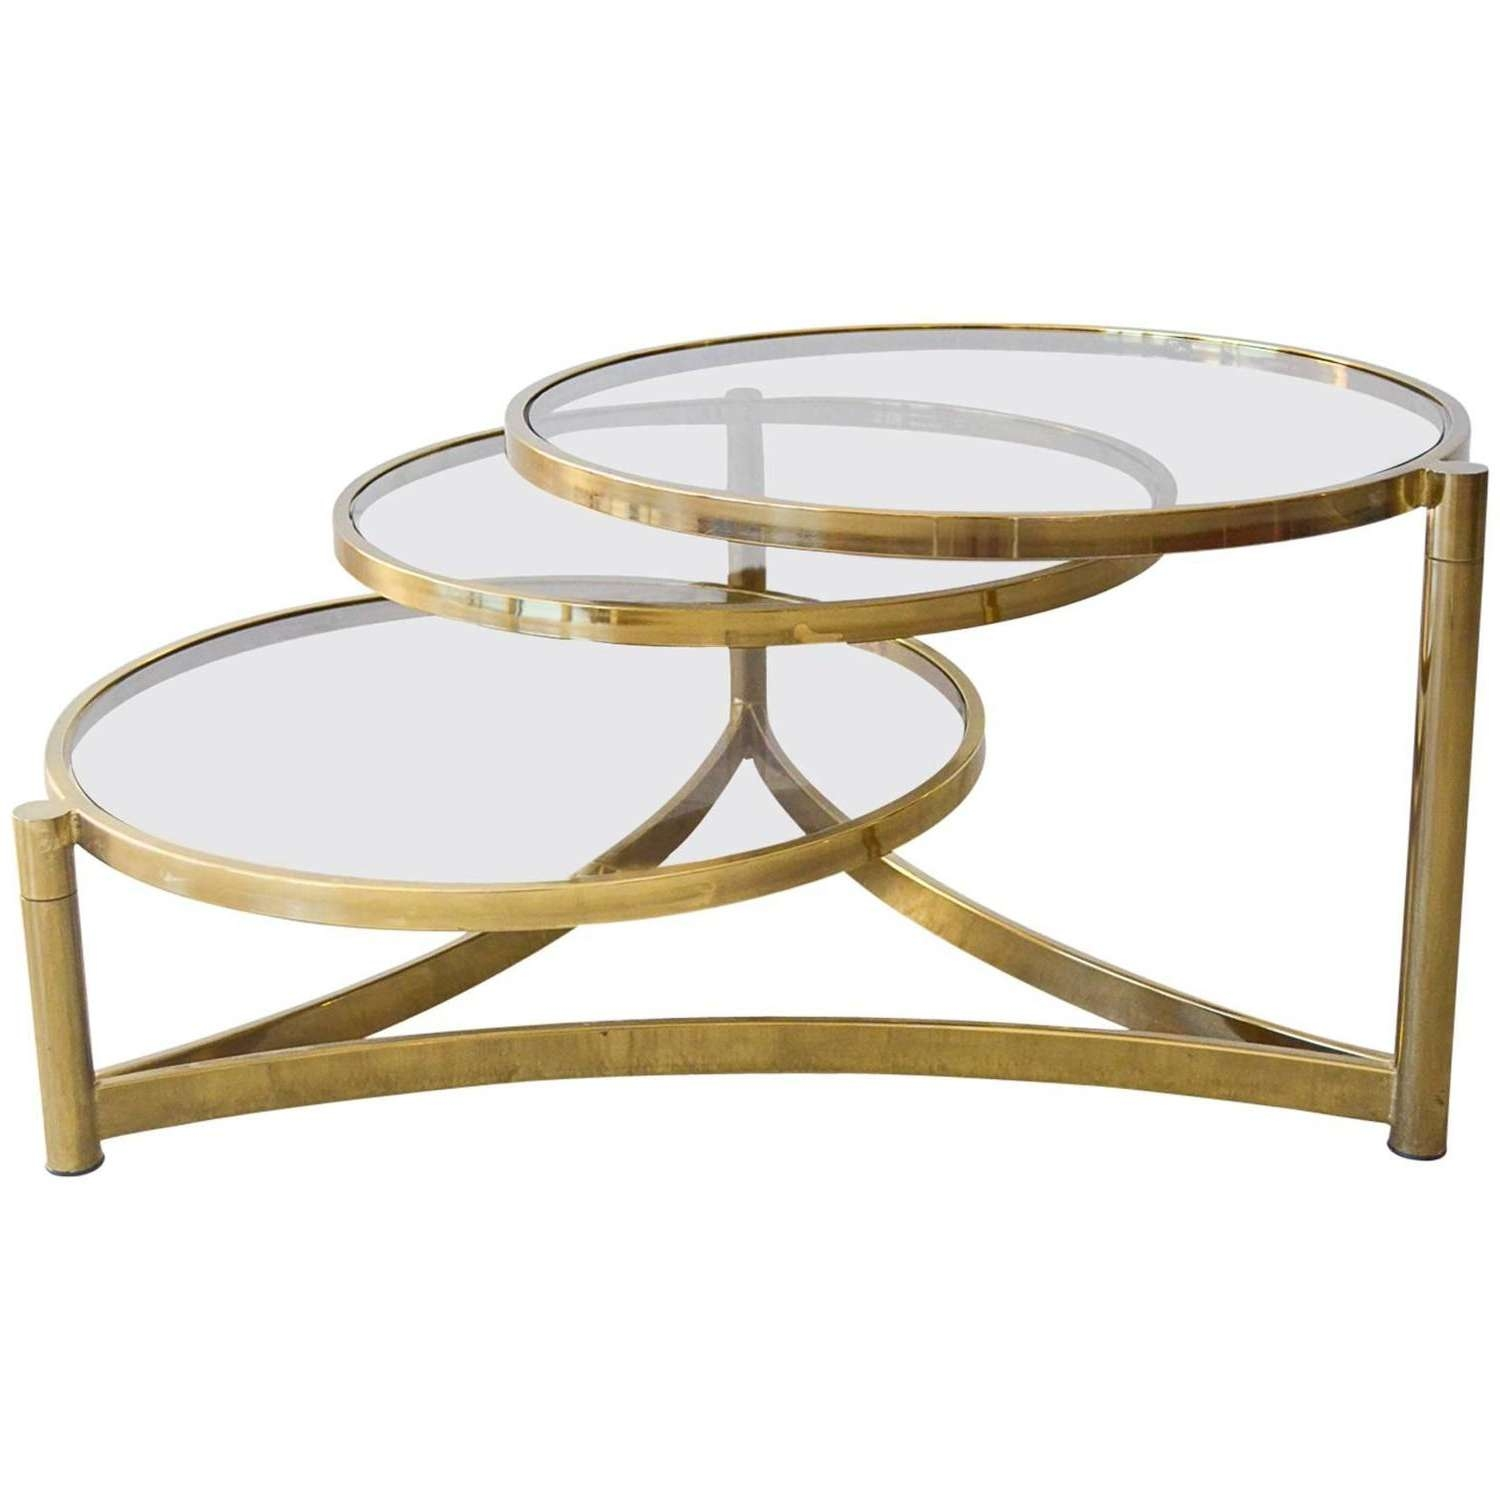 Well Liked Round Swivel Coffee Tables For Coffee Table : Wonderful Brass And Glass Coffee Table Oval Brass (View 18 of 20)